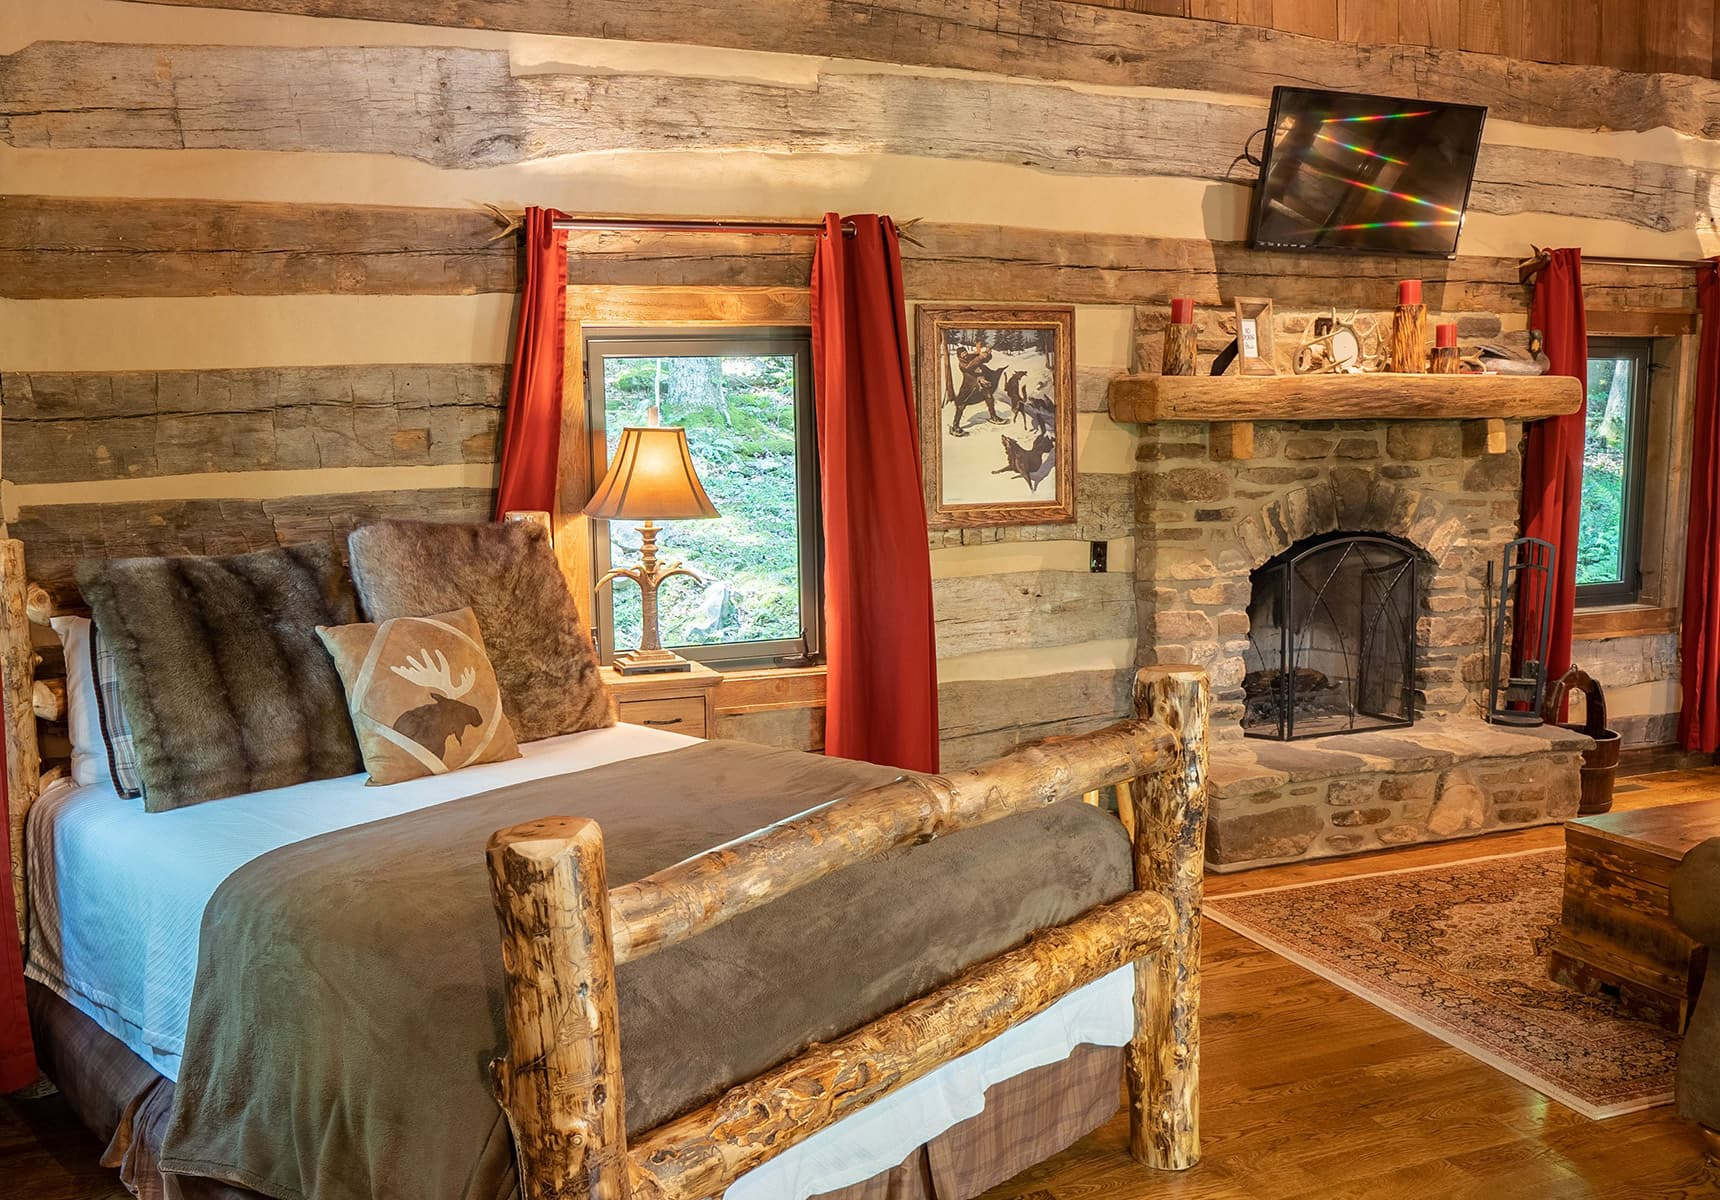 Wilderness Lodge bed with a stone fireplace and wood floors - Monroe County